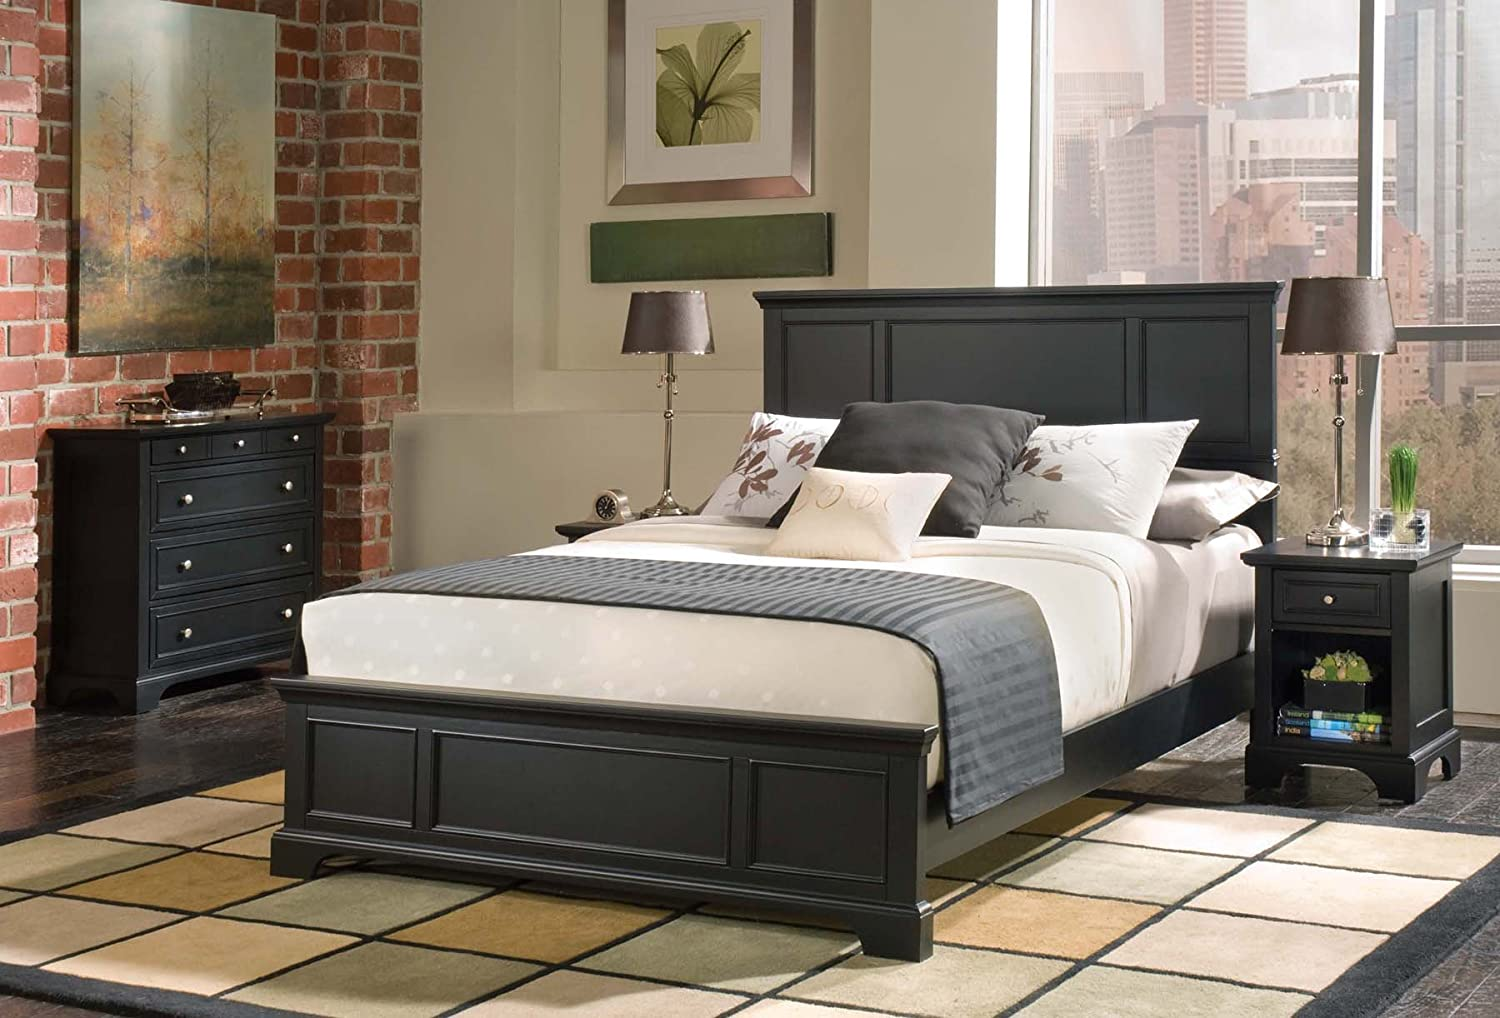 Amazon.com: Home Styles 5531-5014 Bedford Queen Bed, Nightstand ...